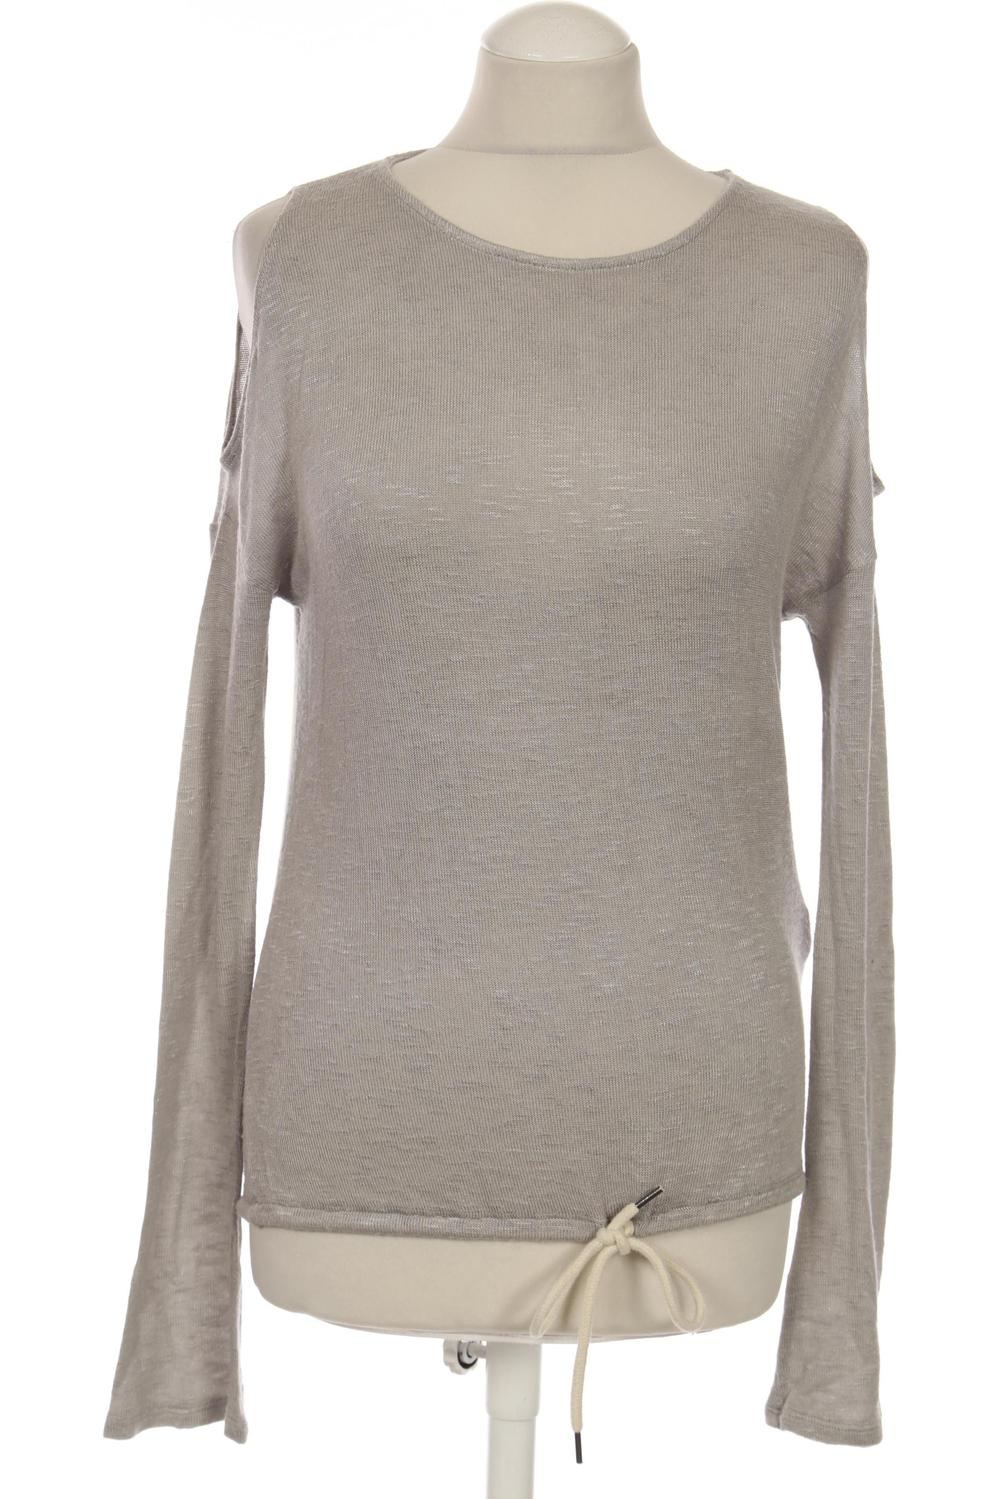 timeless design 95e77 01485 ubup | Abercrombie & Fitch Damen Pullover INT XS Second Hand ...